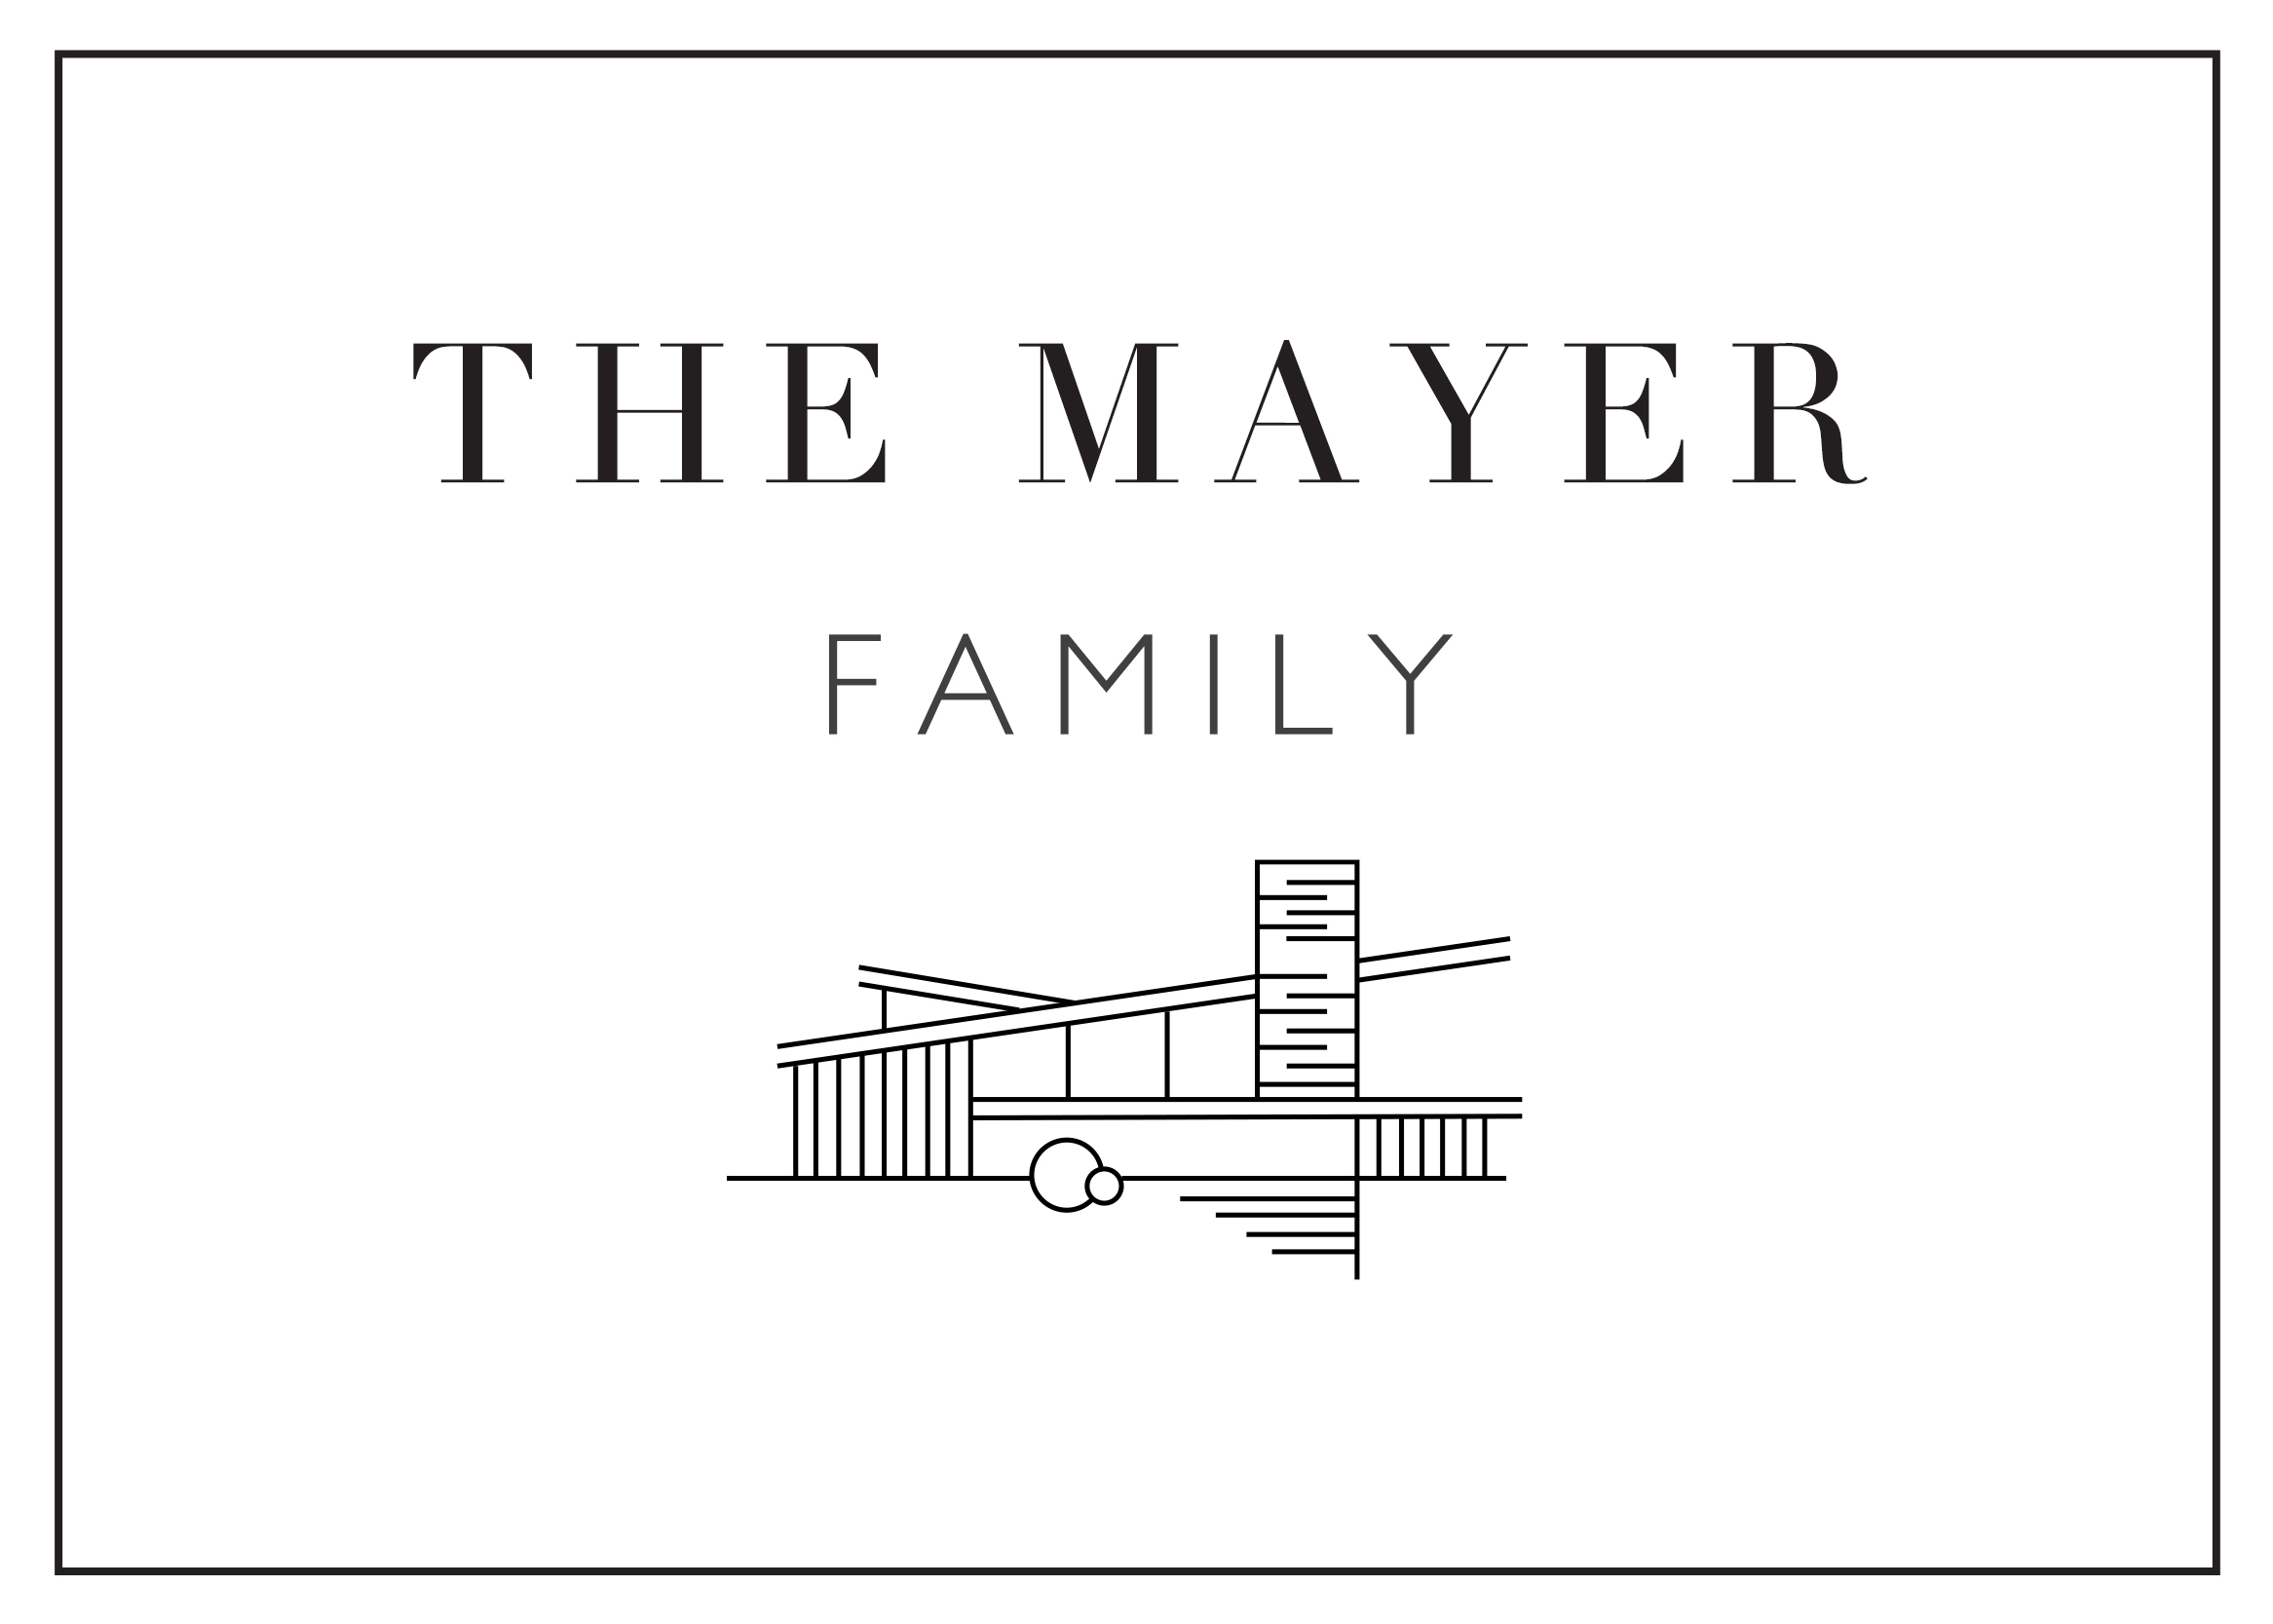 Mayer Family.jpg